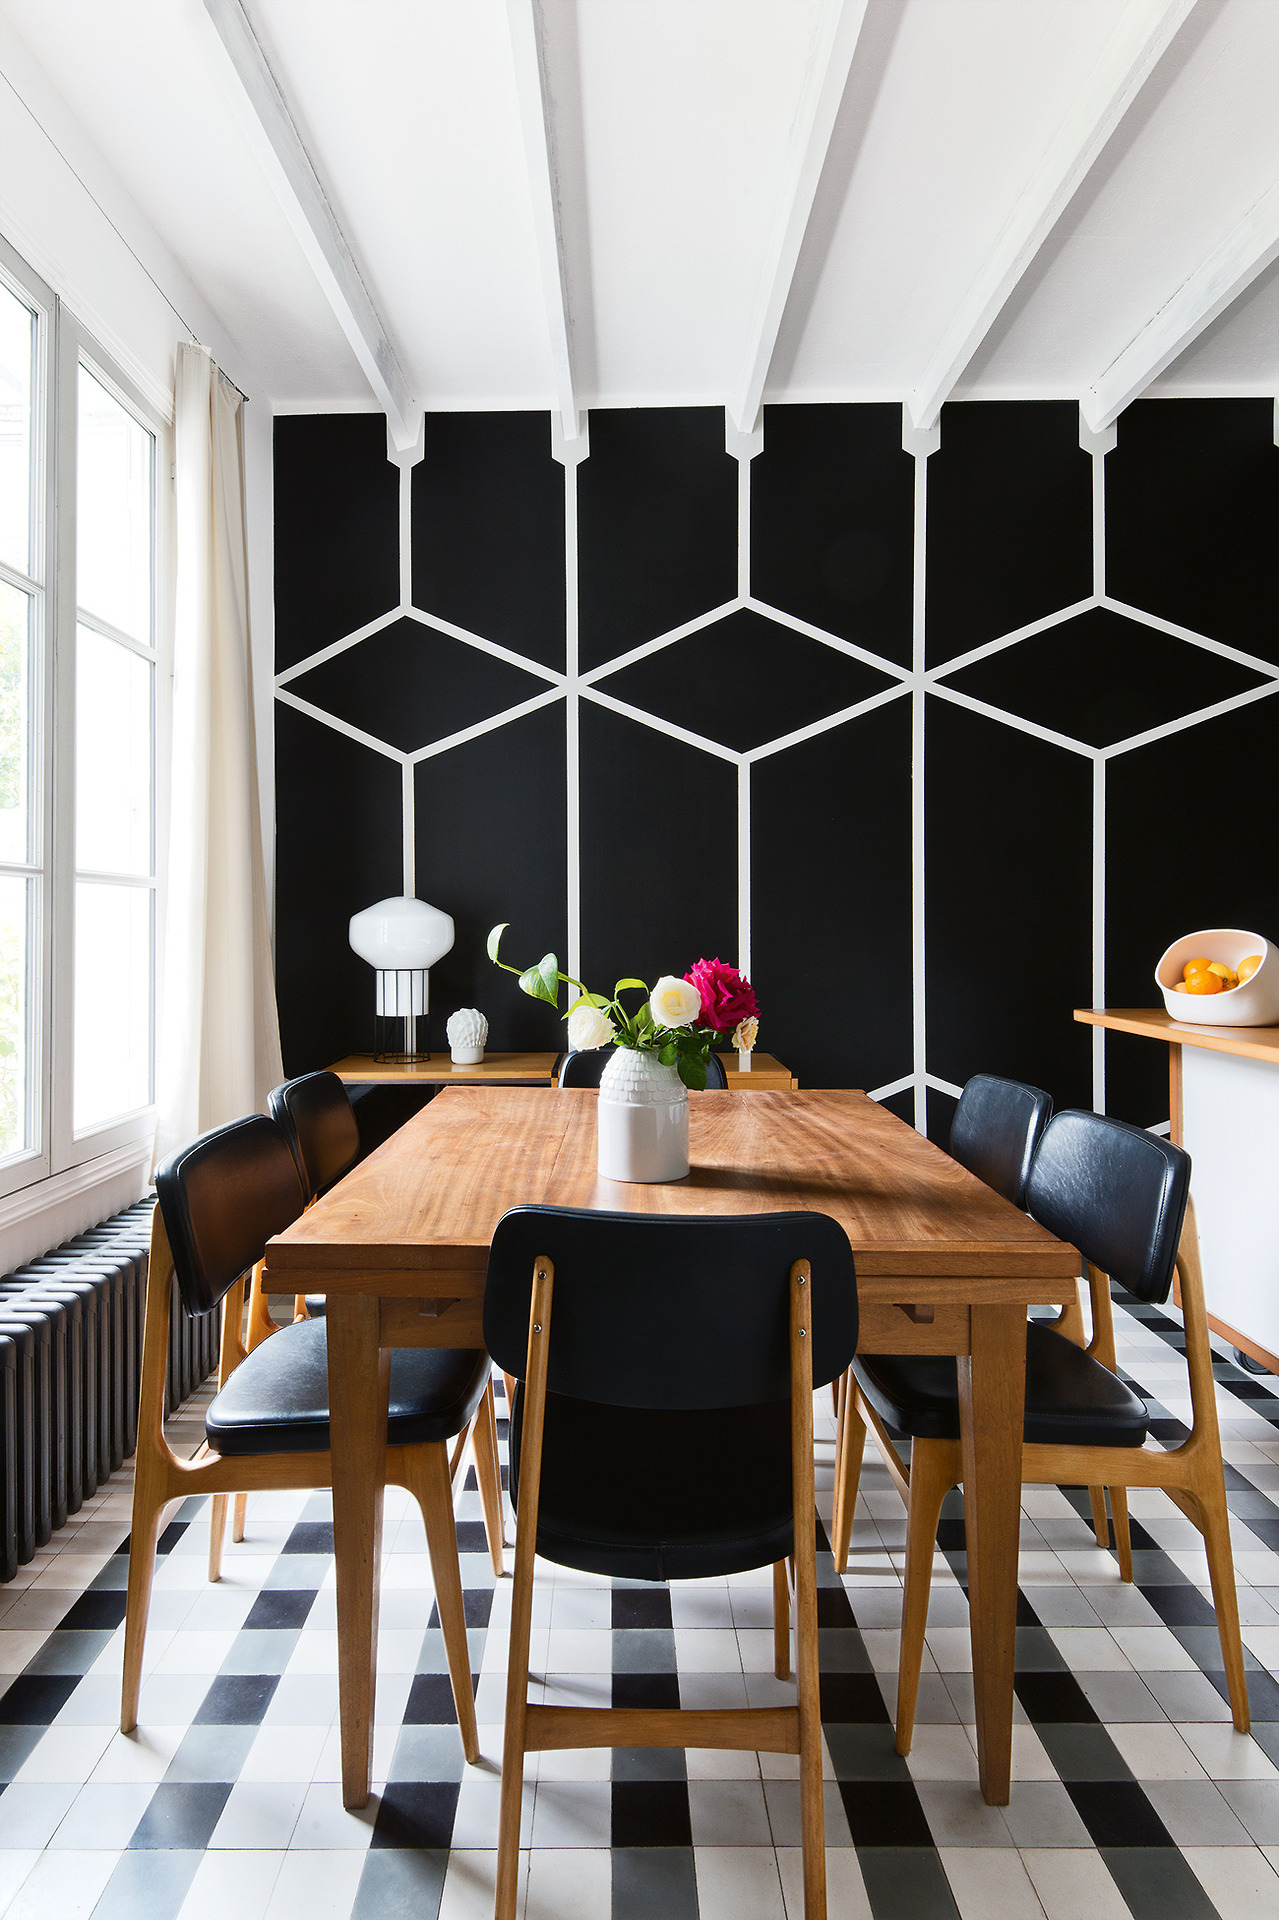 Decoración de Interiores: Ideas para decorar tu comedor - El124